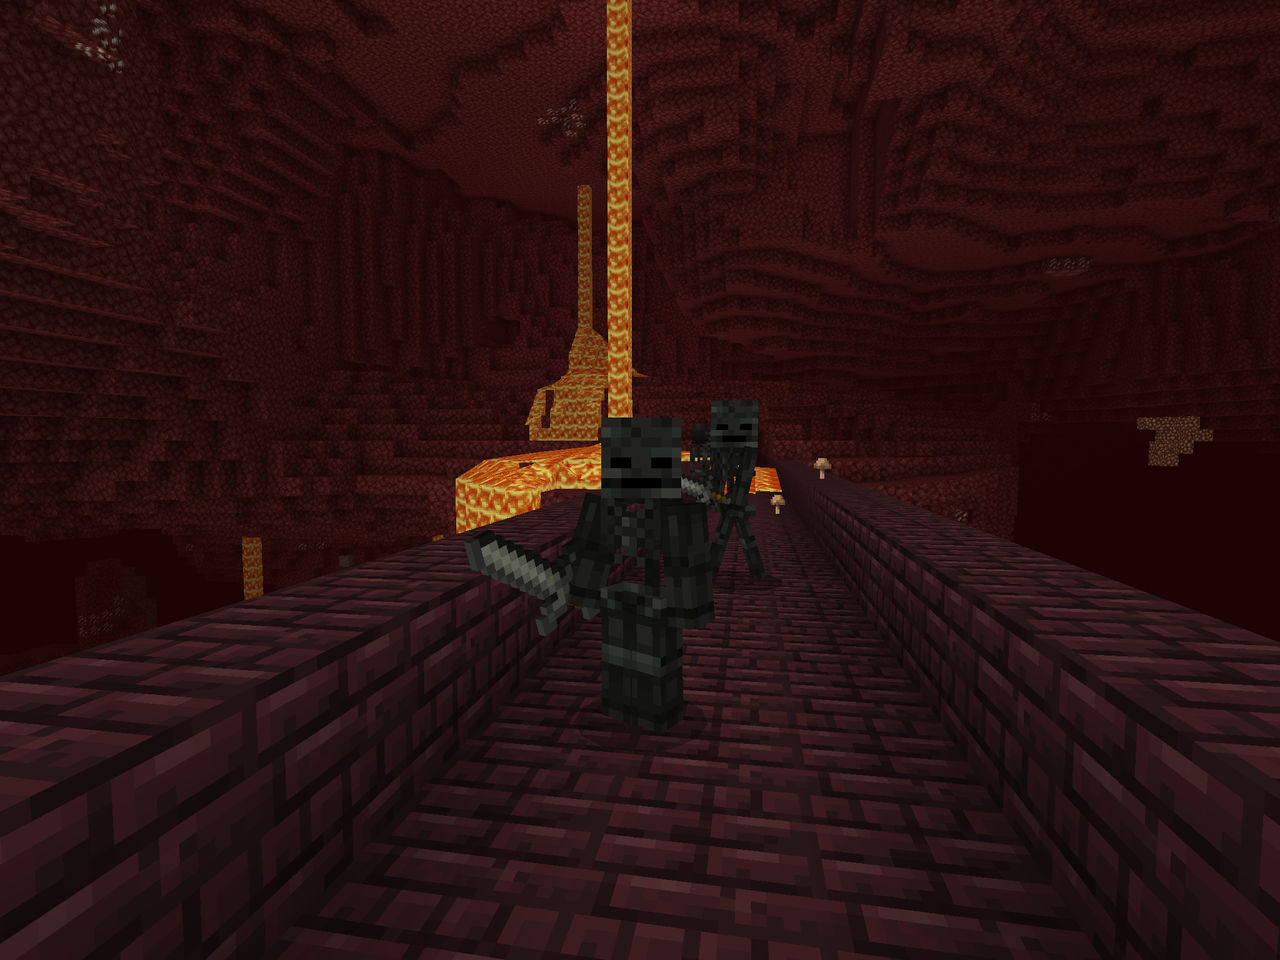 Wither Skeleton Texture Update By Darthkilliverse On Deviantart